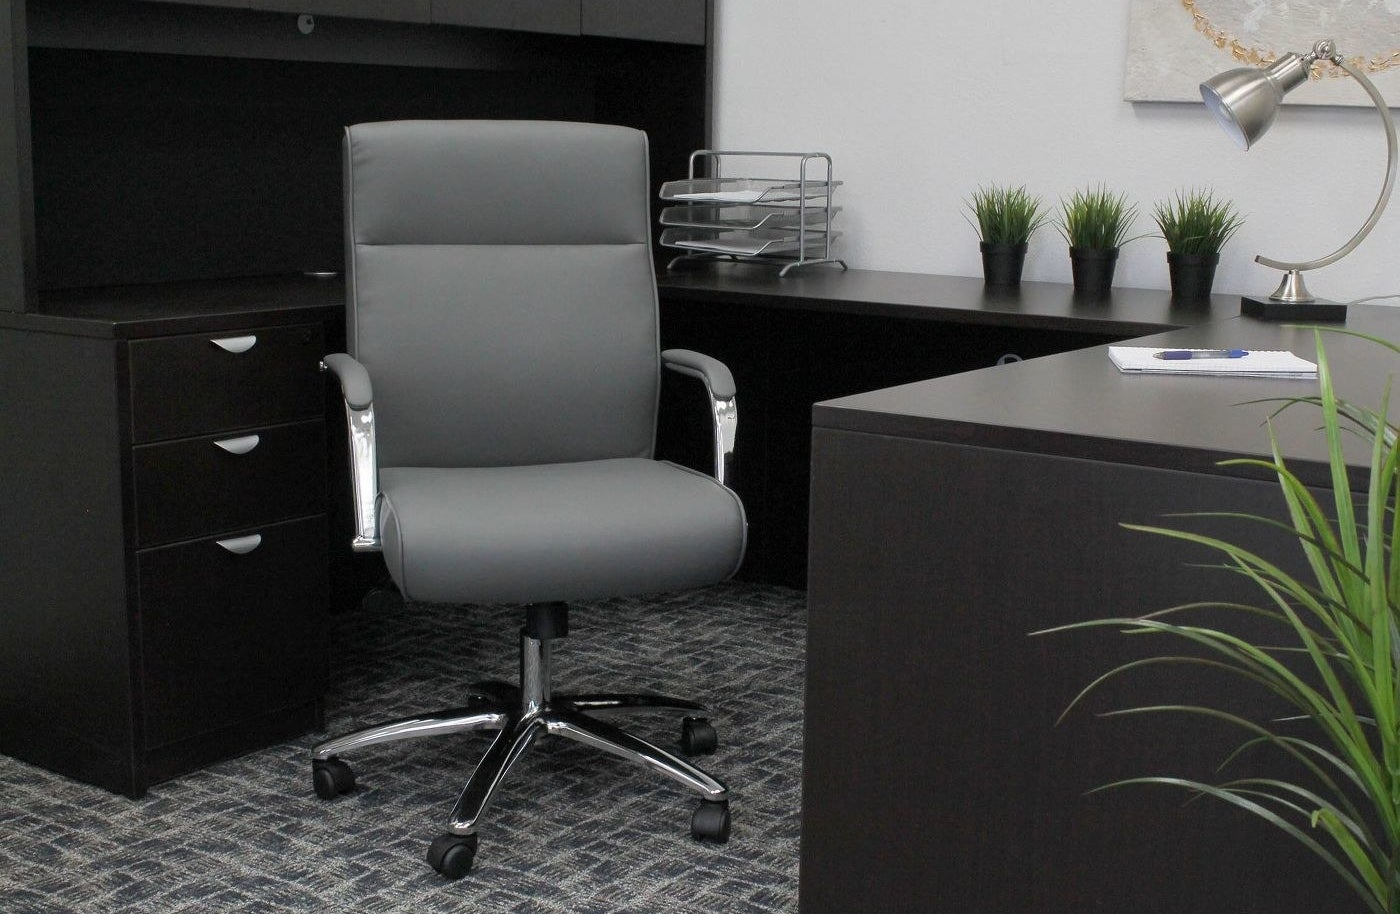 A grey chair in an office